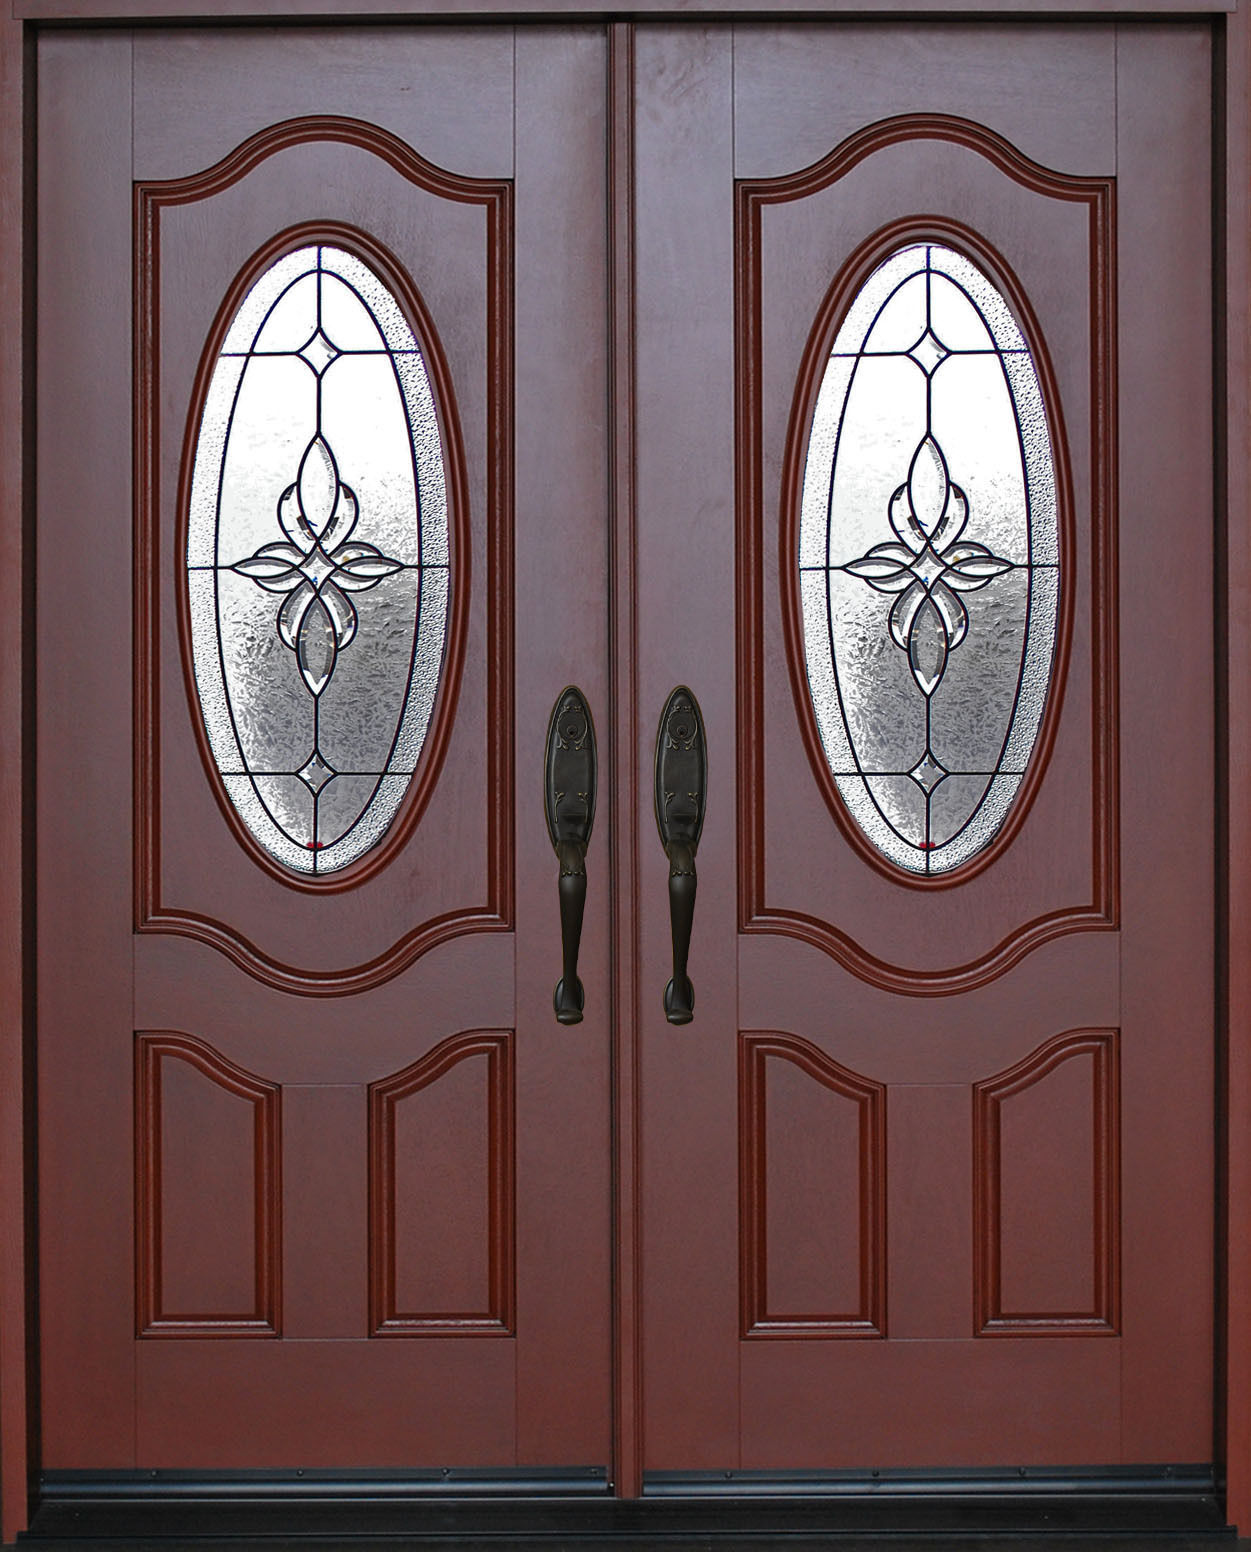 Exterior front entry double house fiberglass door m800b 30 x 80 x2 dbl doors for Fiberglass double doors exterior